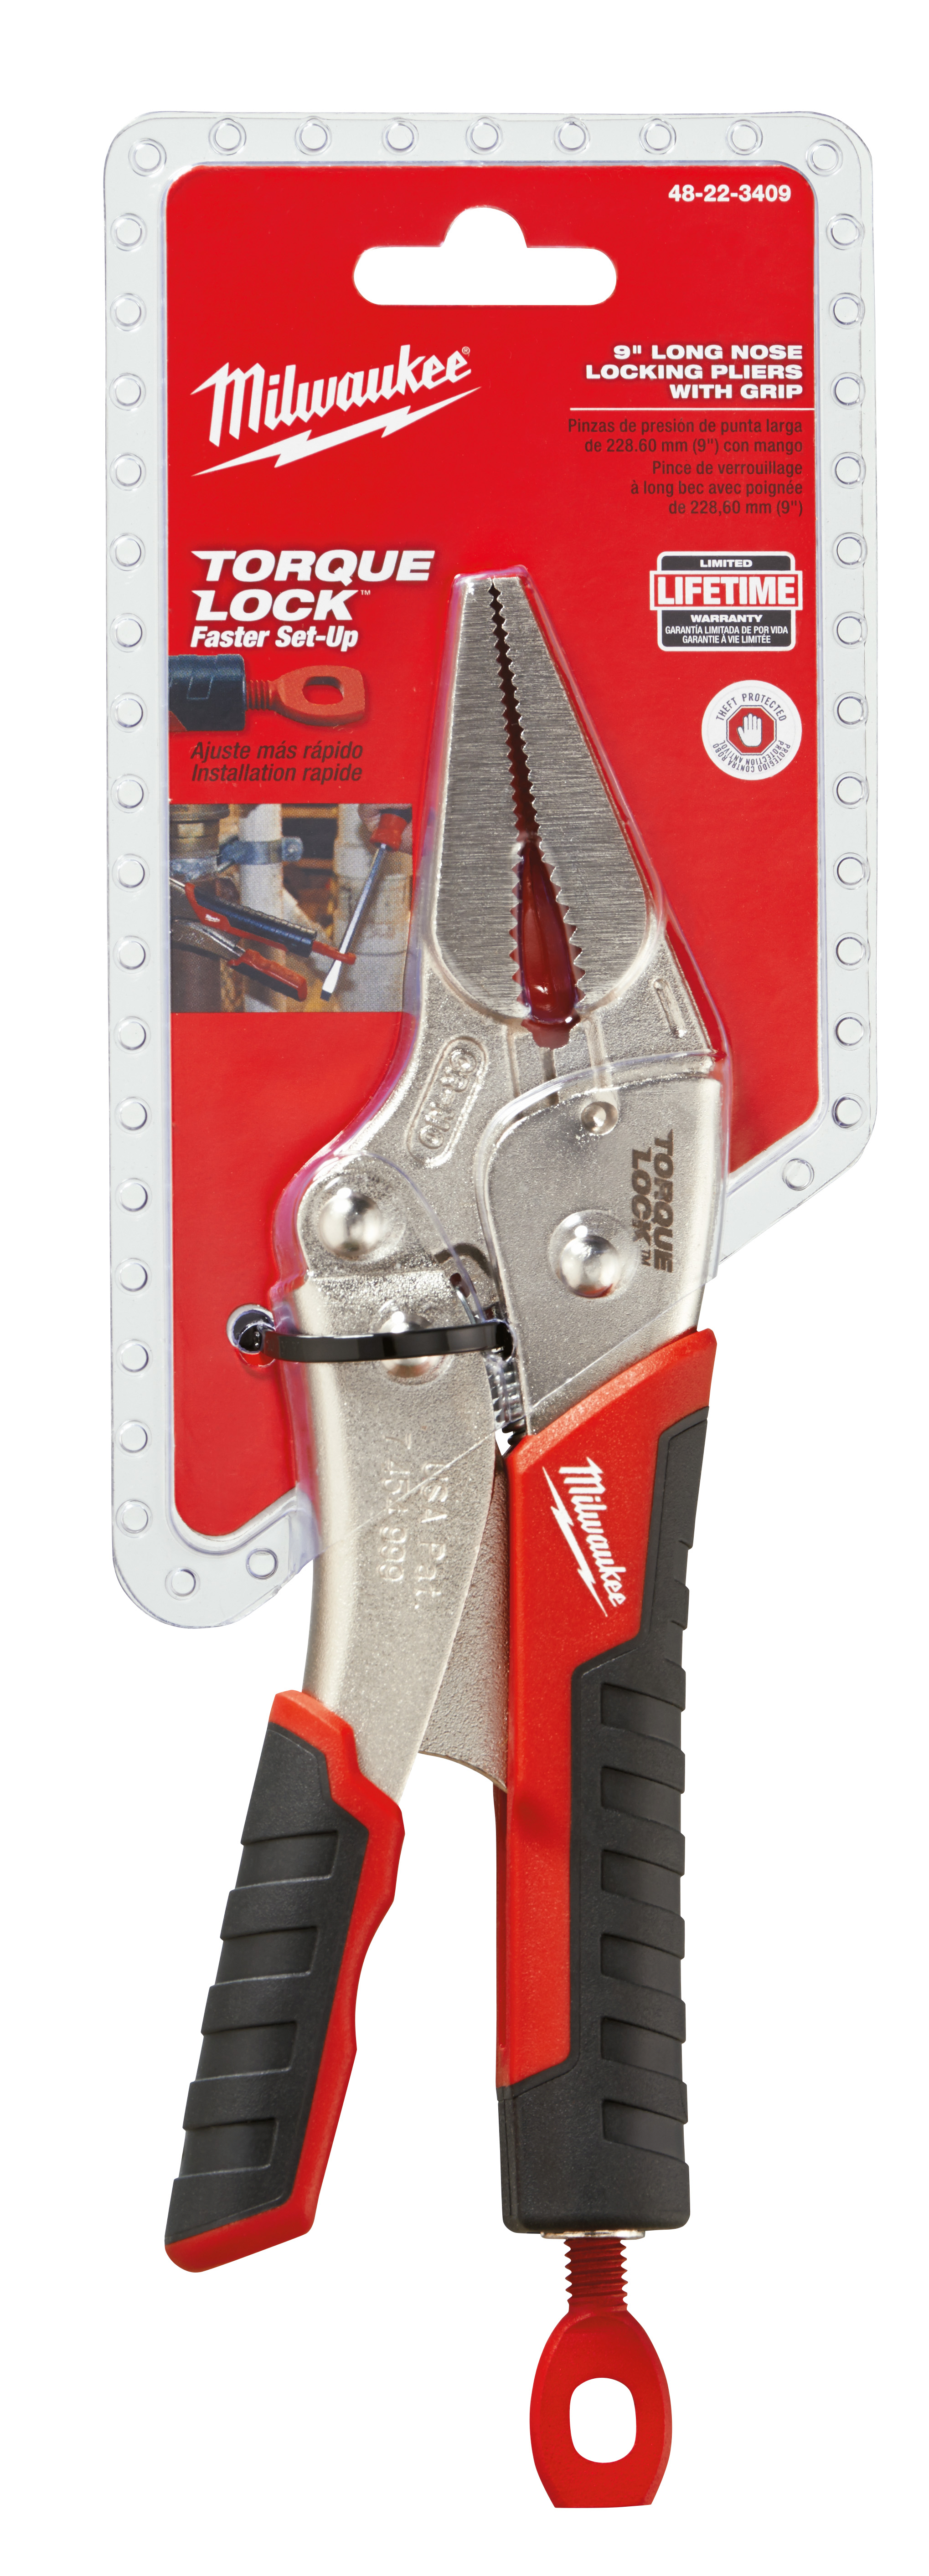 Milwaukee® TORQUE LOCK™ 48-22-3409 Locking Plier With Wire Cutter, 2-1/2 in Nominal, 2.11 in L x 3/16 in W Forged Alloy Steel Long Nose Curved Jaw, 9 in OAL